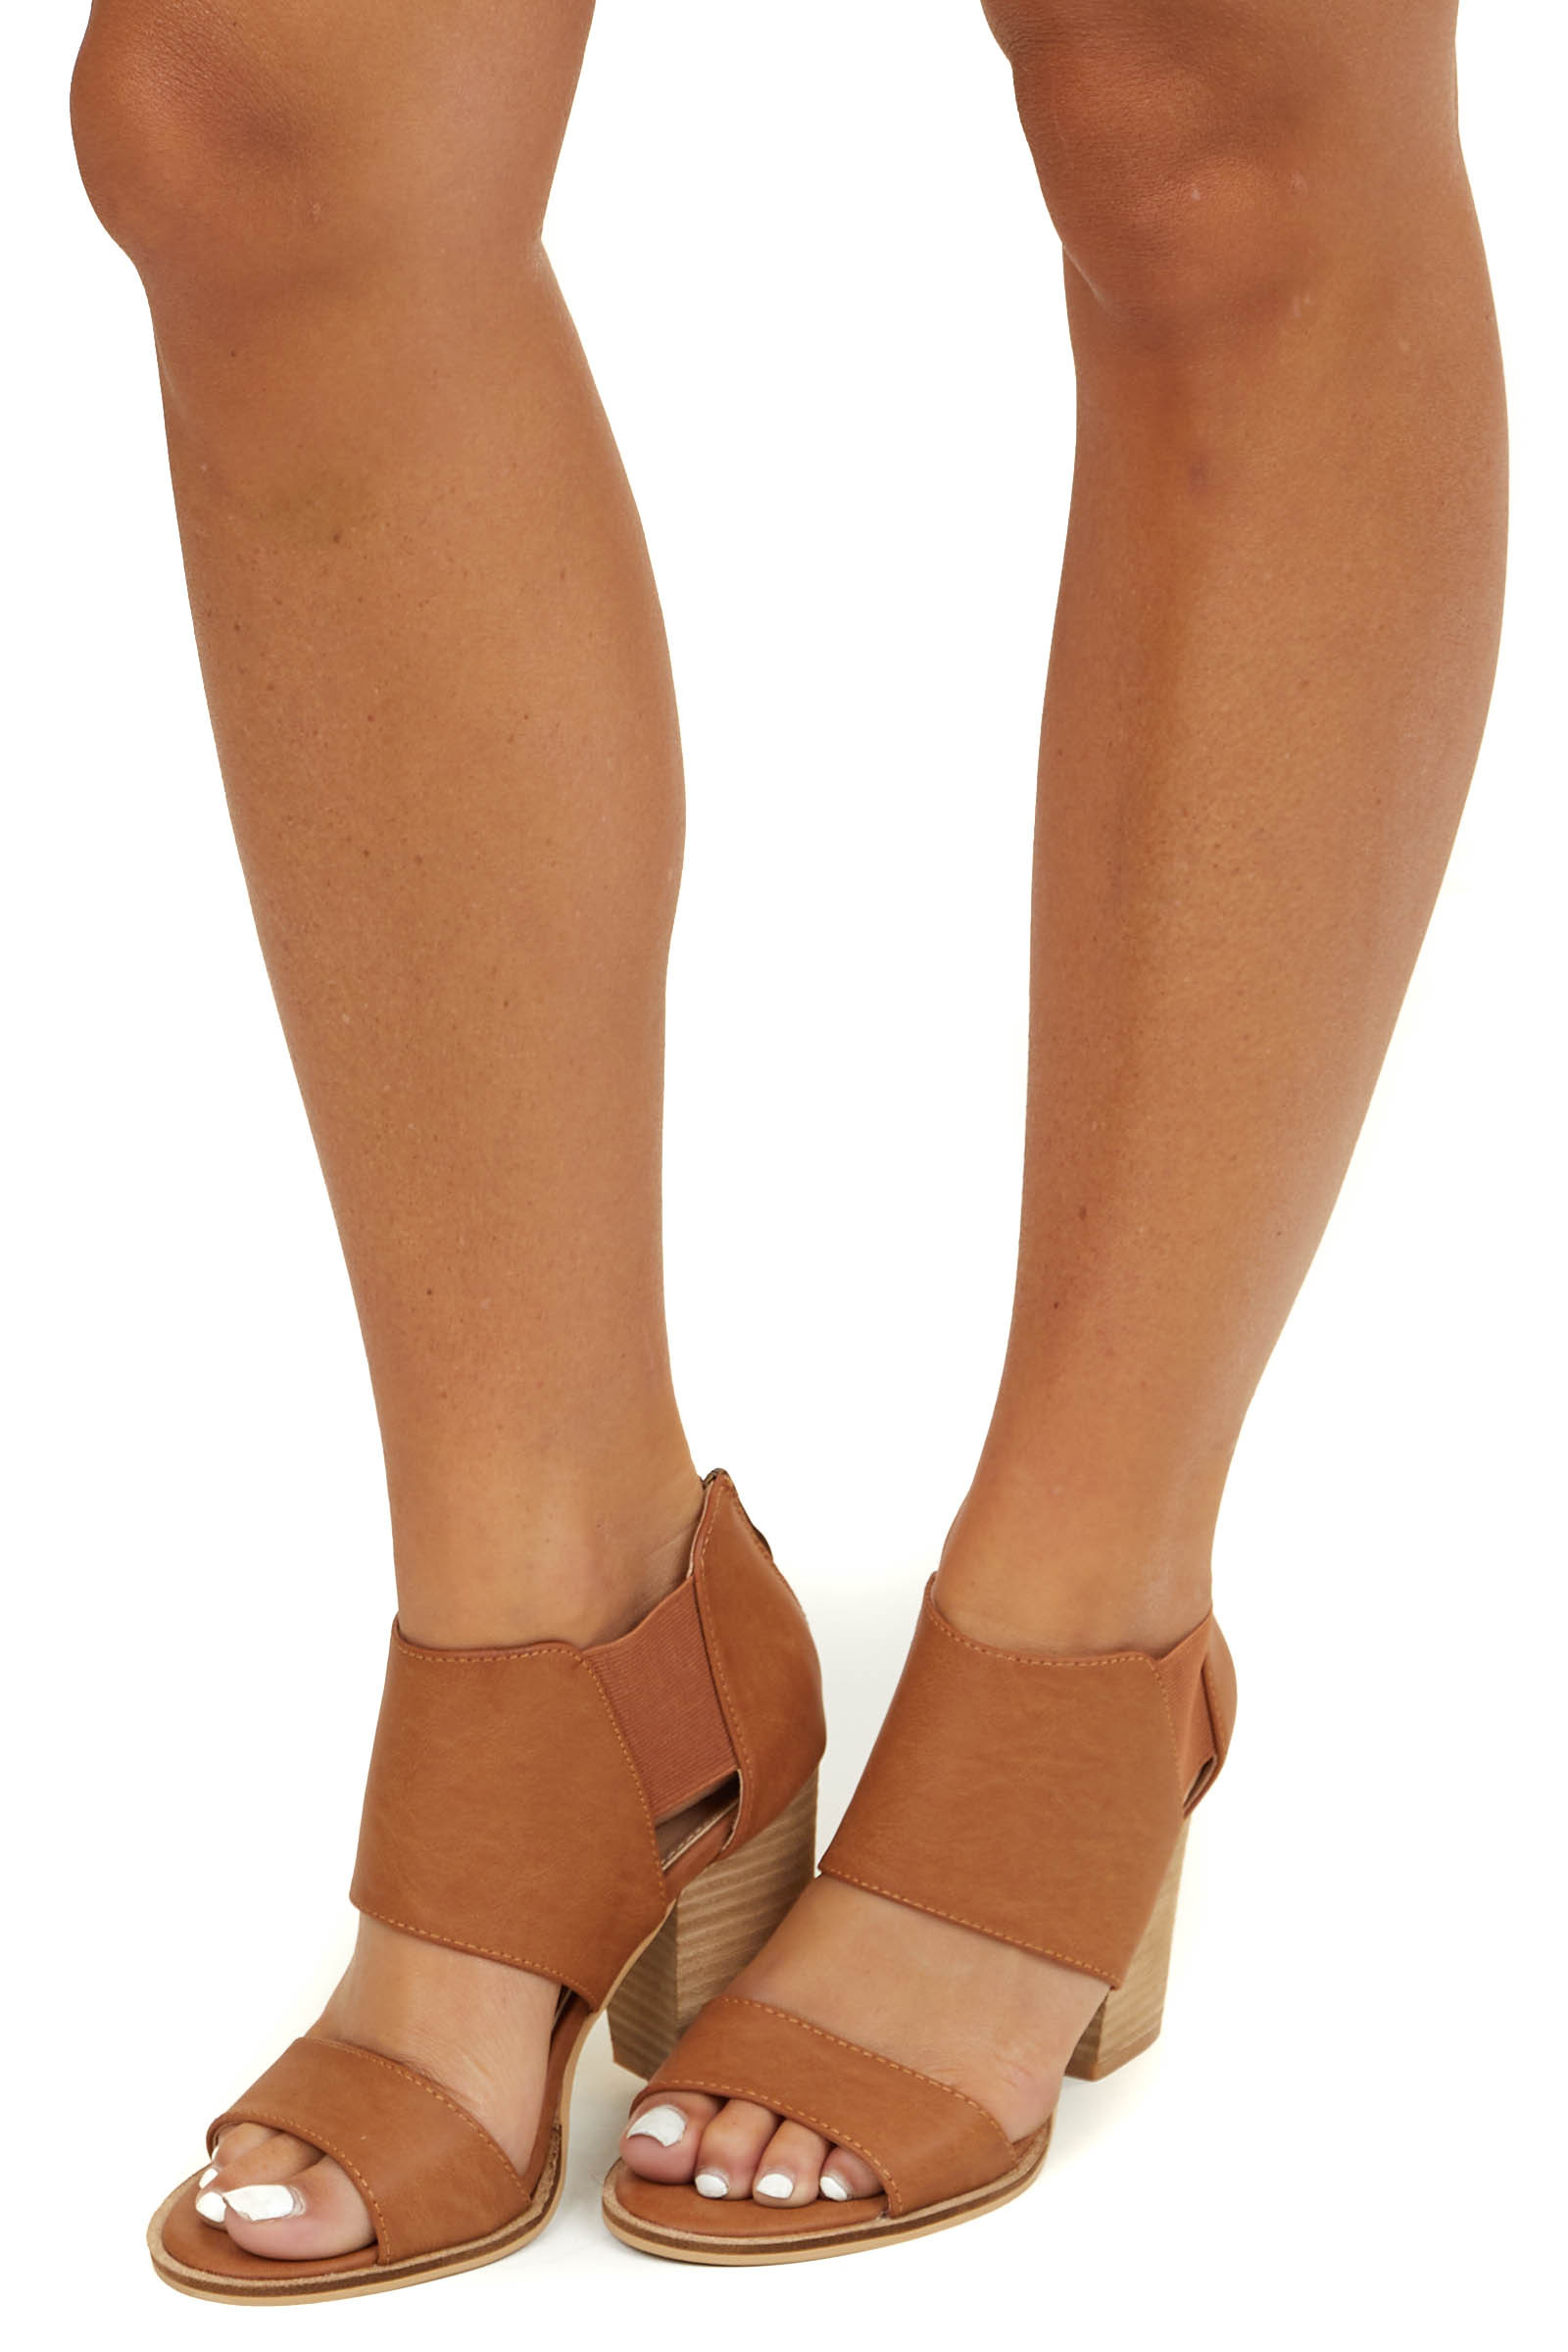 Cognac Faux Leather Open Toed Heels with Elastic Sides